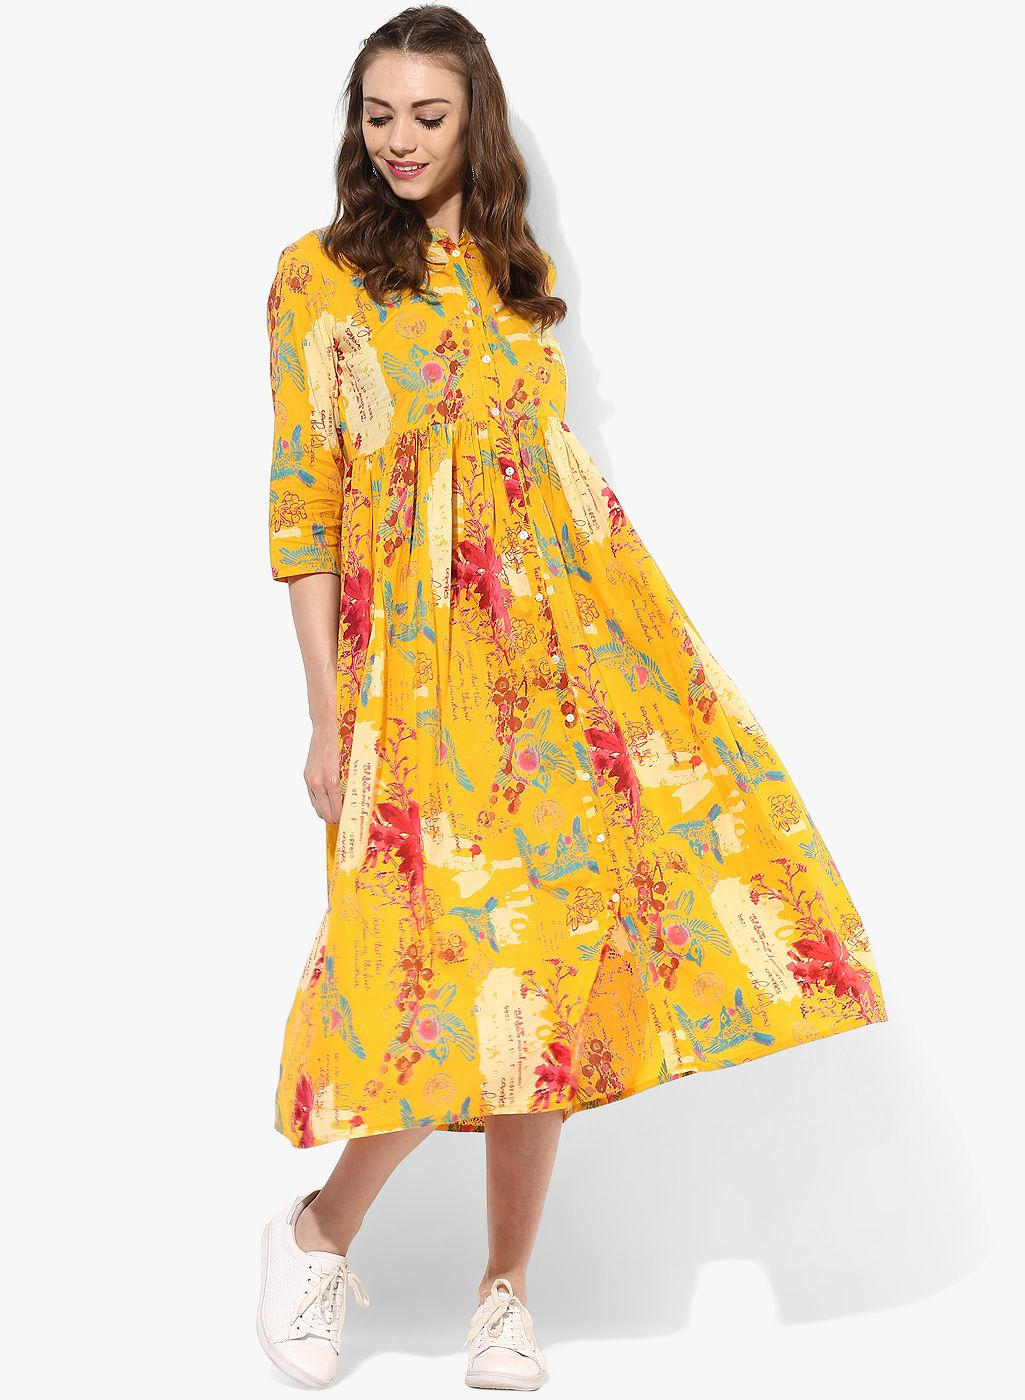 b657d68594 Buy Sangria Yellow Cotton Floral Frock Style Kurti online in India at best  price.The distinctive mix of floral, splash and text print of this yellow  kurti ...